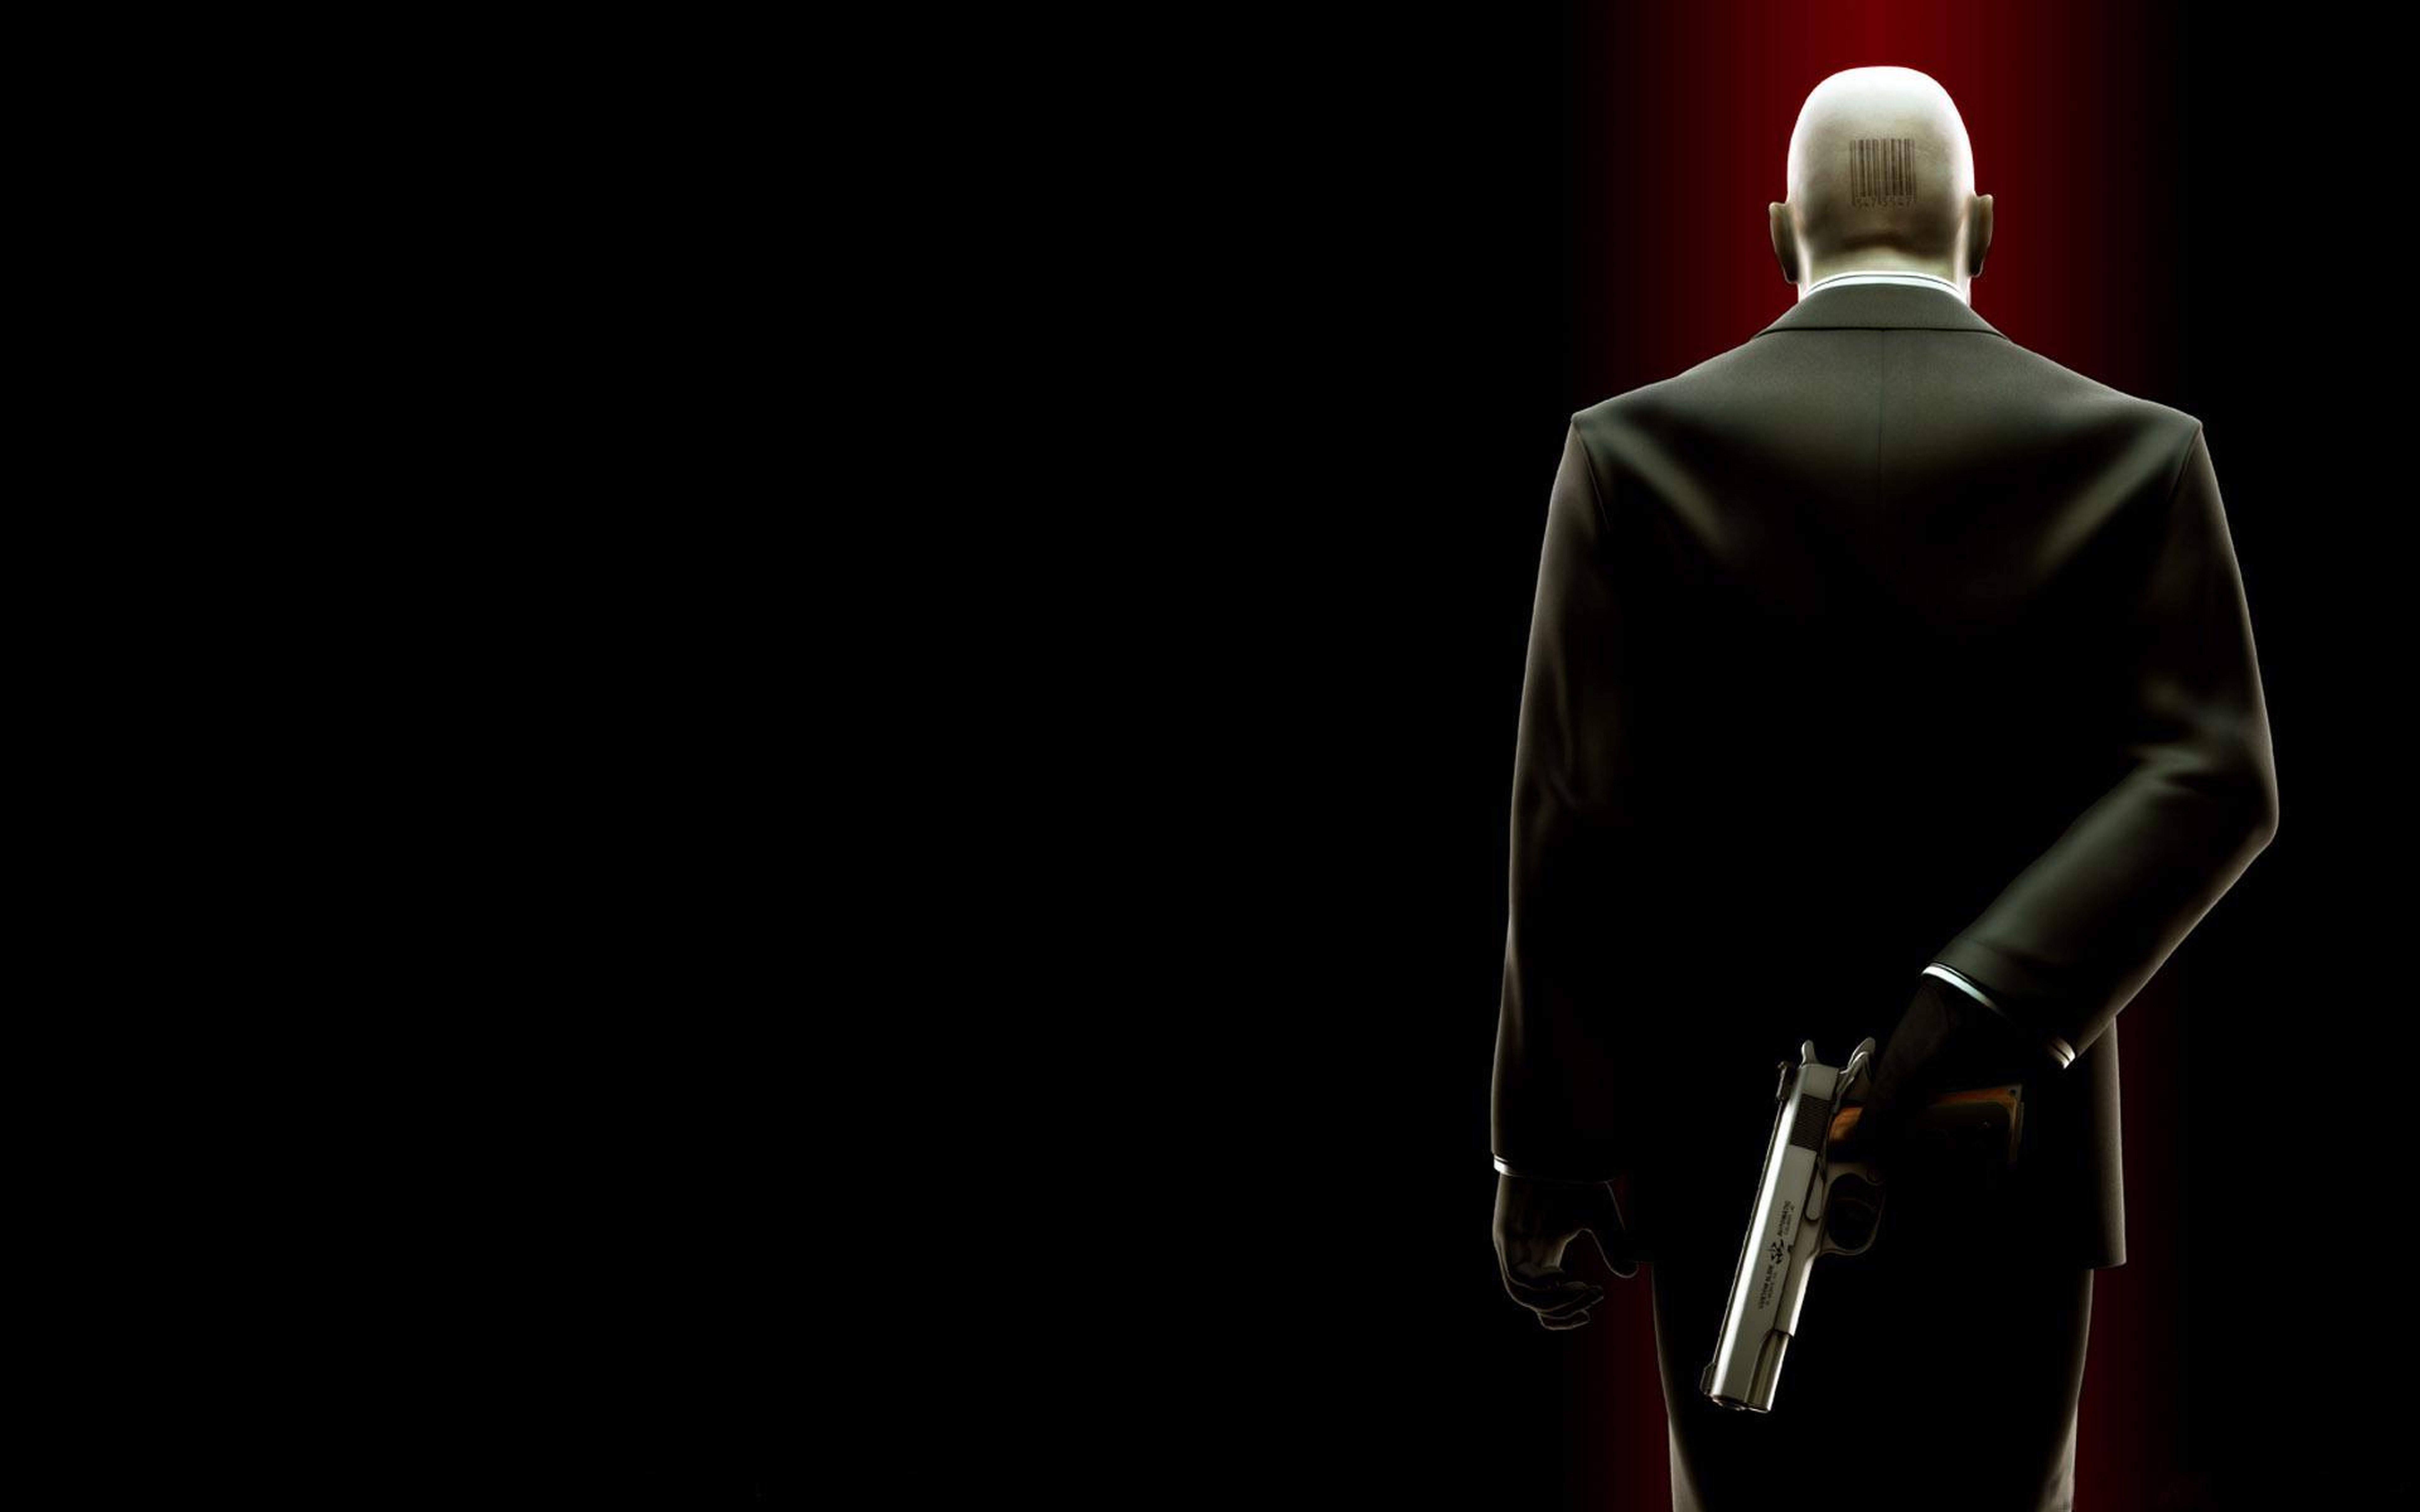 Best Hd Wallpapers Of Hitman Wallpapers And Backgrounds For Your Iphone Https Itunes Apple Com Us App Hd Wallpapers Backg Hitman Hitman Agent 47 Hitman Movie